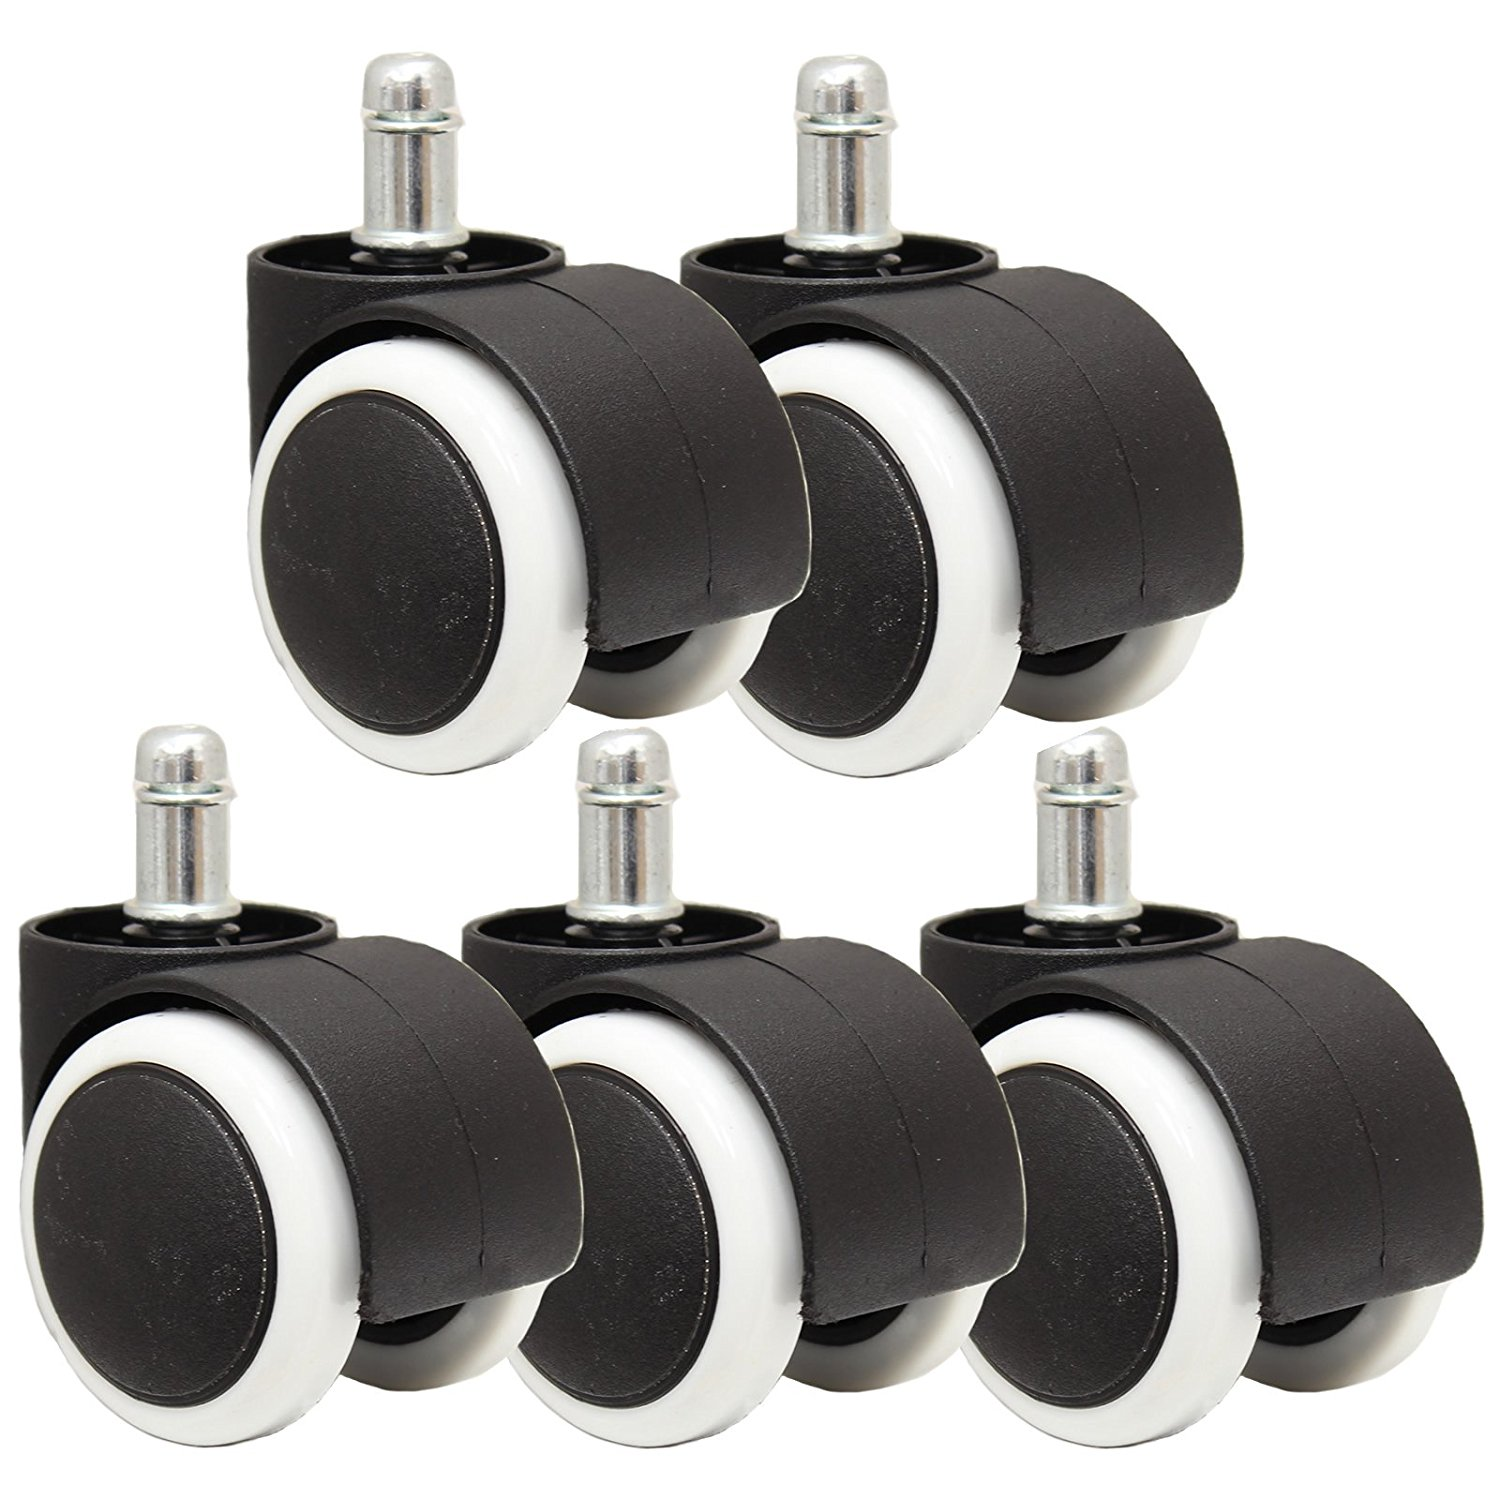 5 pcs Universal casters Office Chair 360 Degree swivel Roller Castor Wheels black&white Wheel diameter 50mm